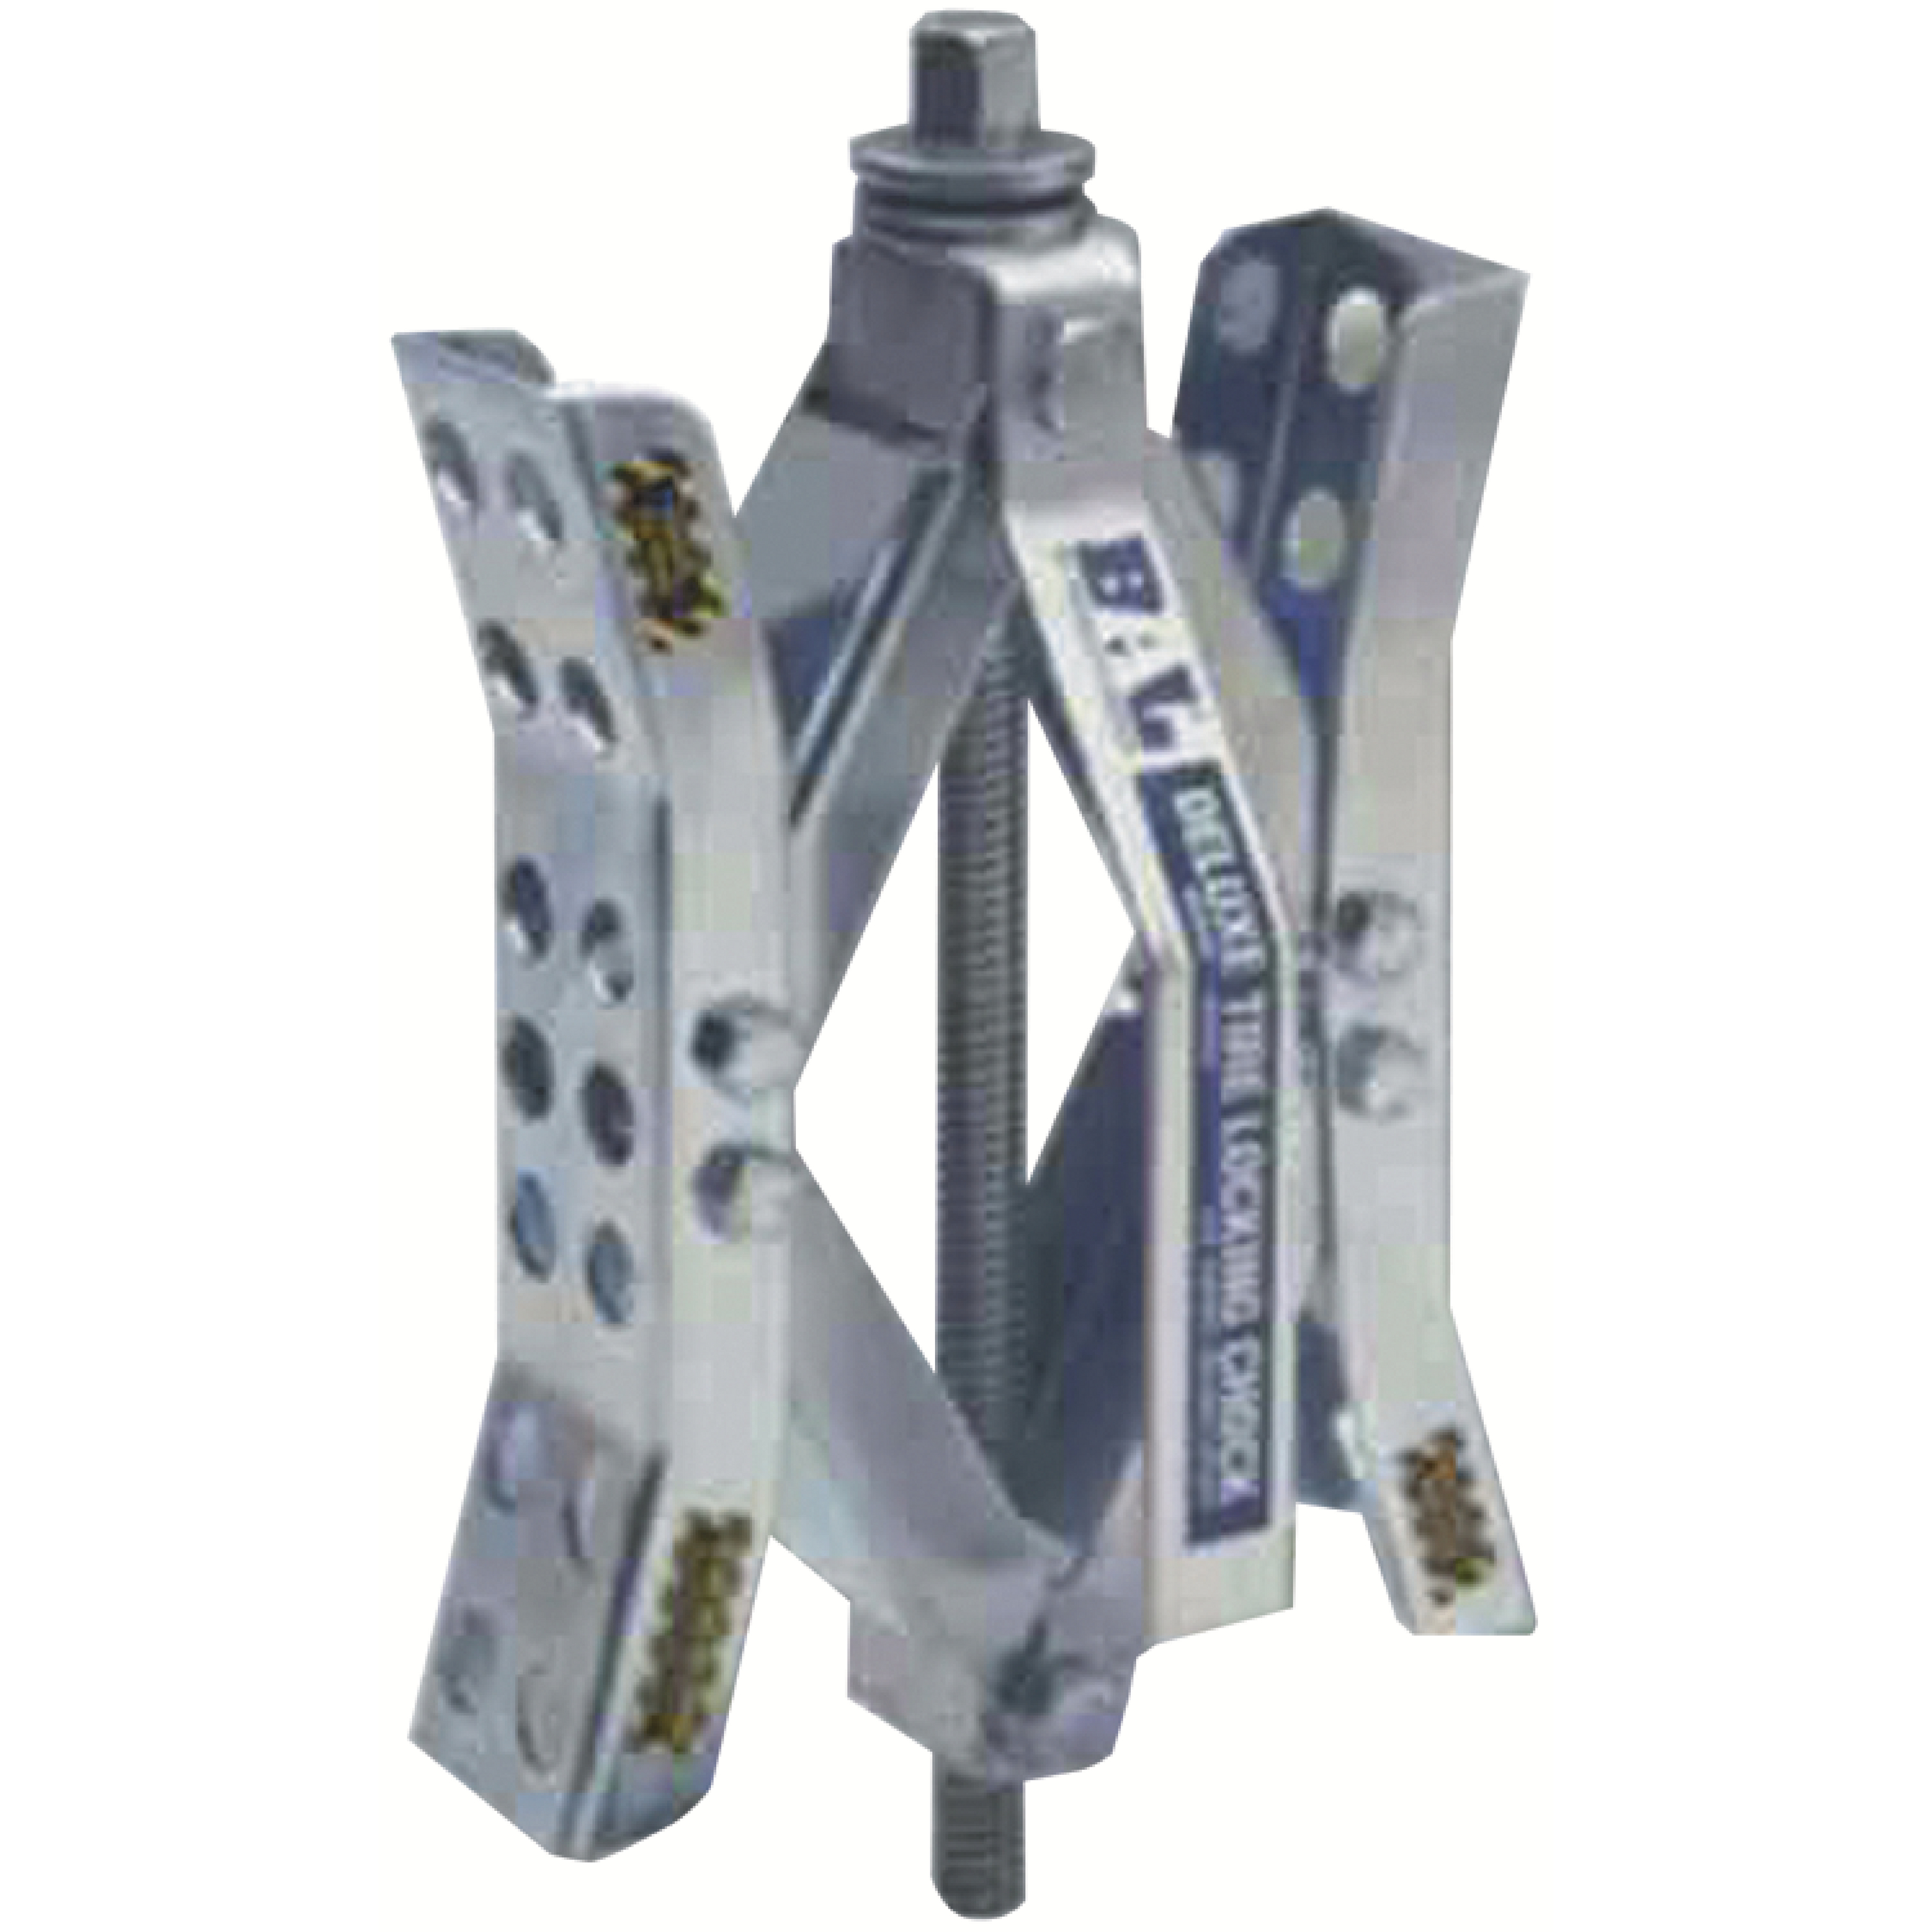 Bal Products 28005 Deluxe Tire Locking Chock for RV Trailers